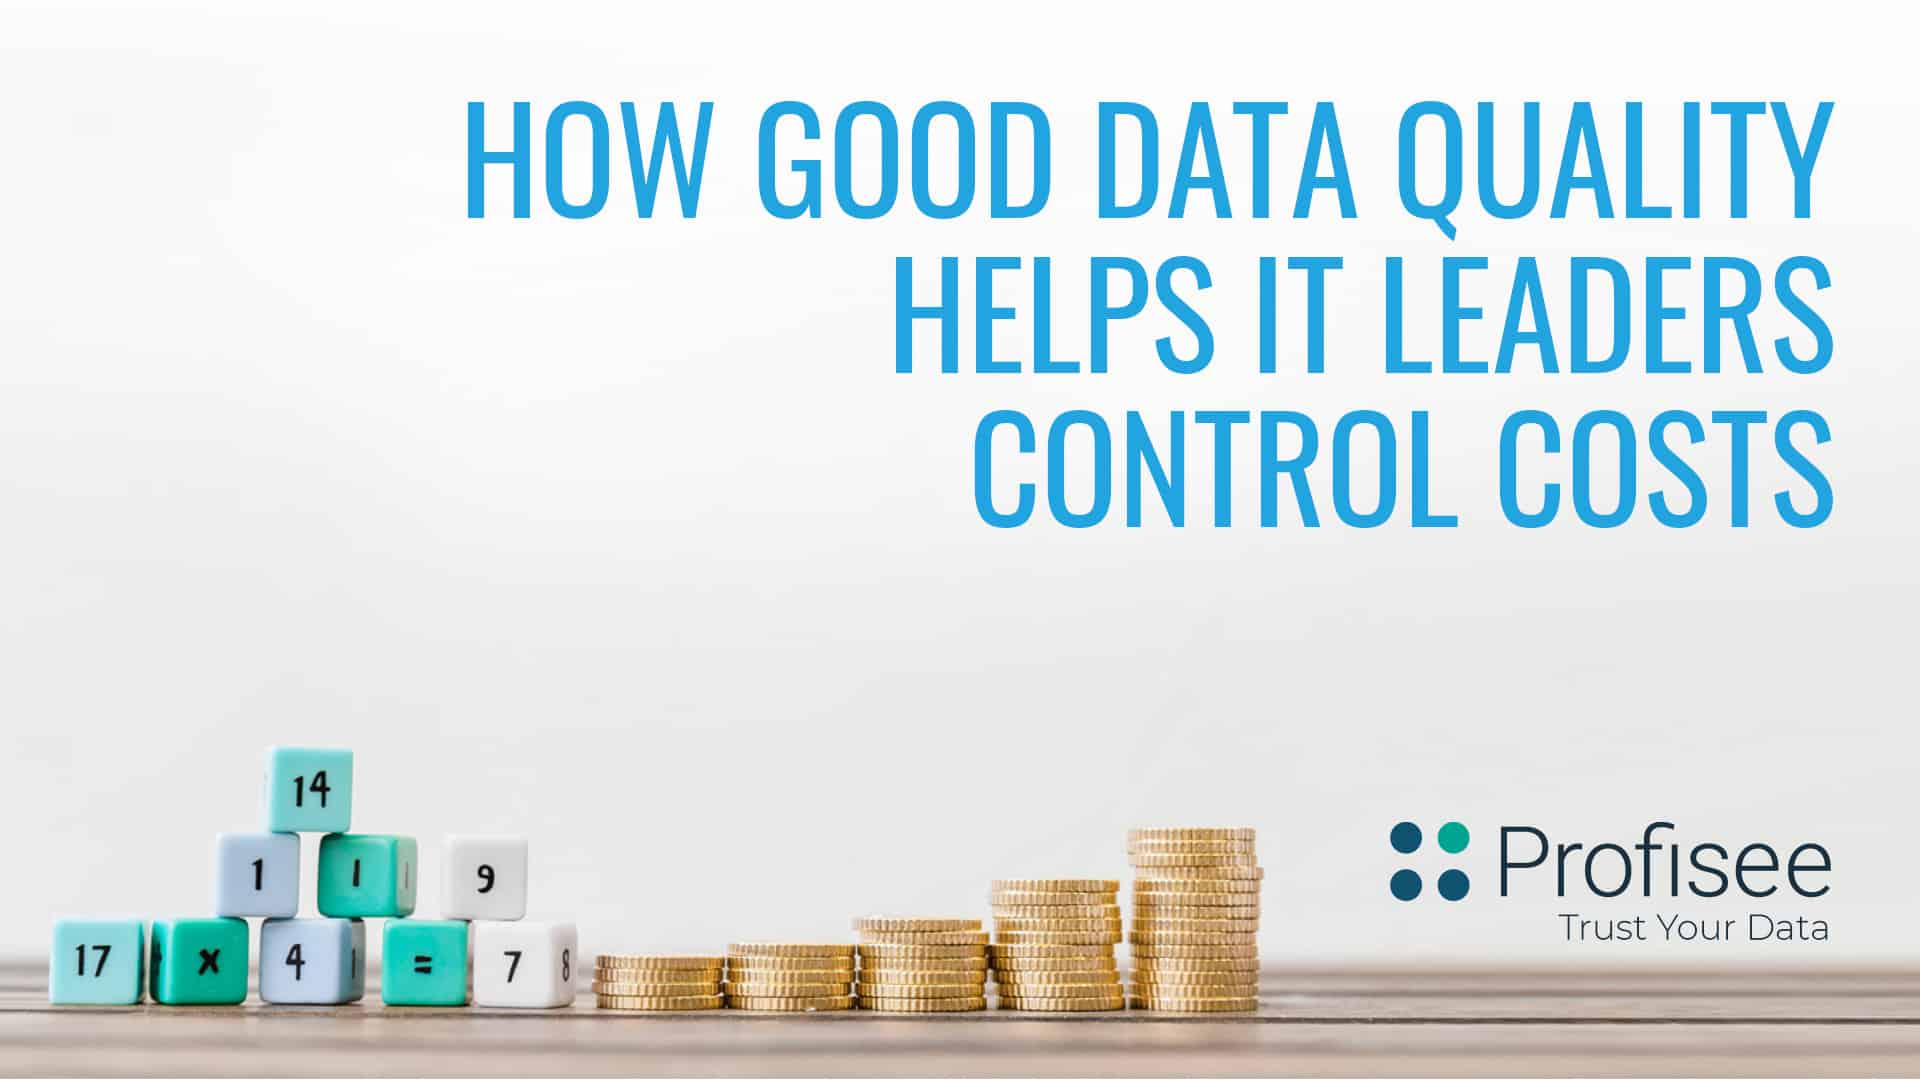 How Good Data Quality Helps IT leaders Control Costs